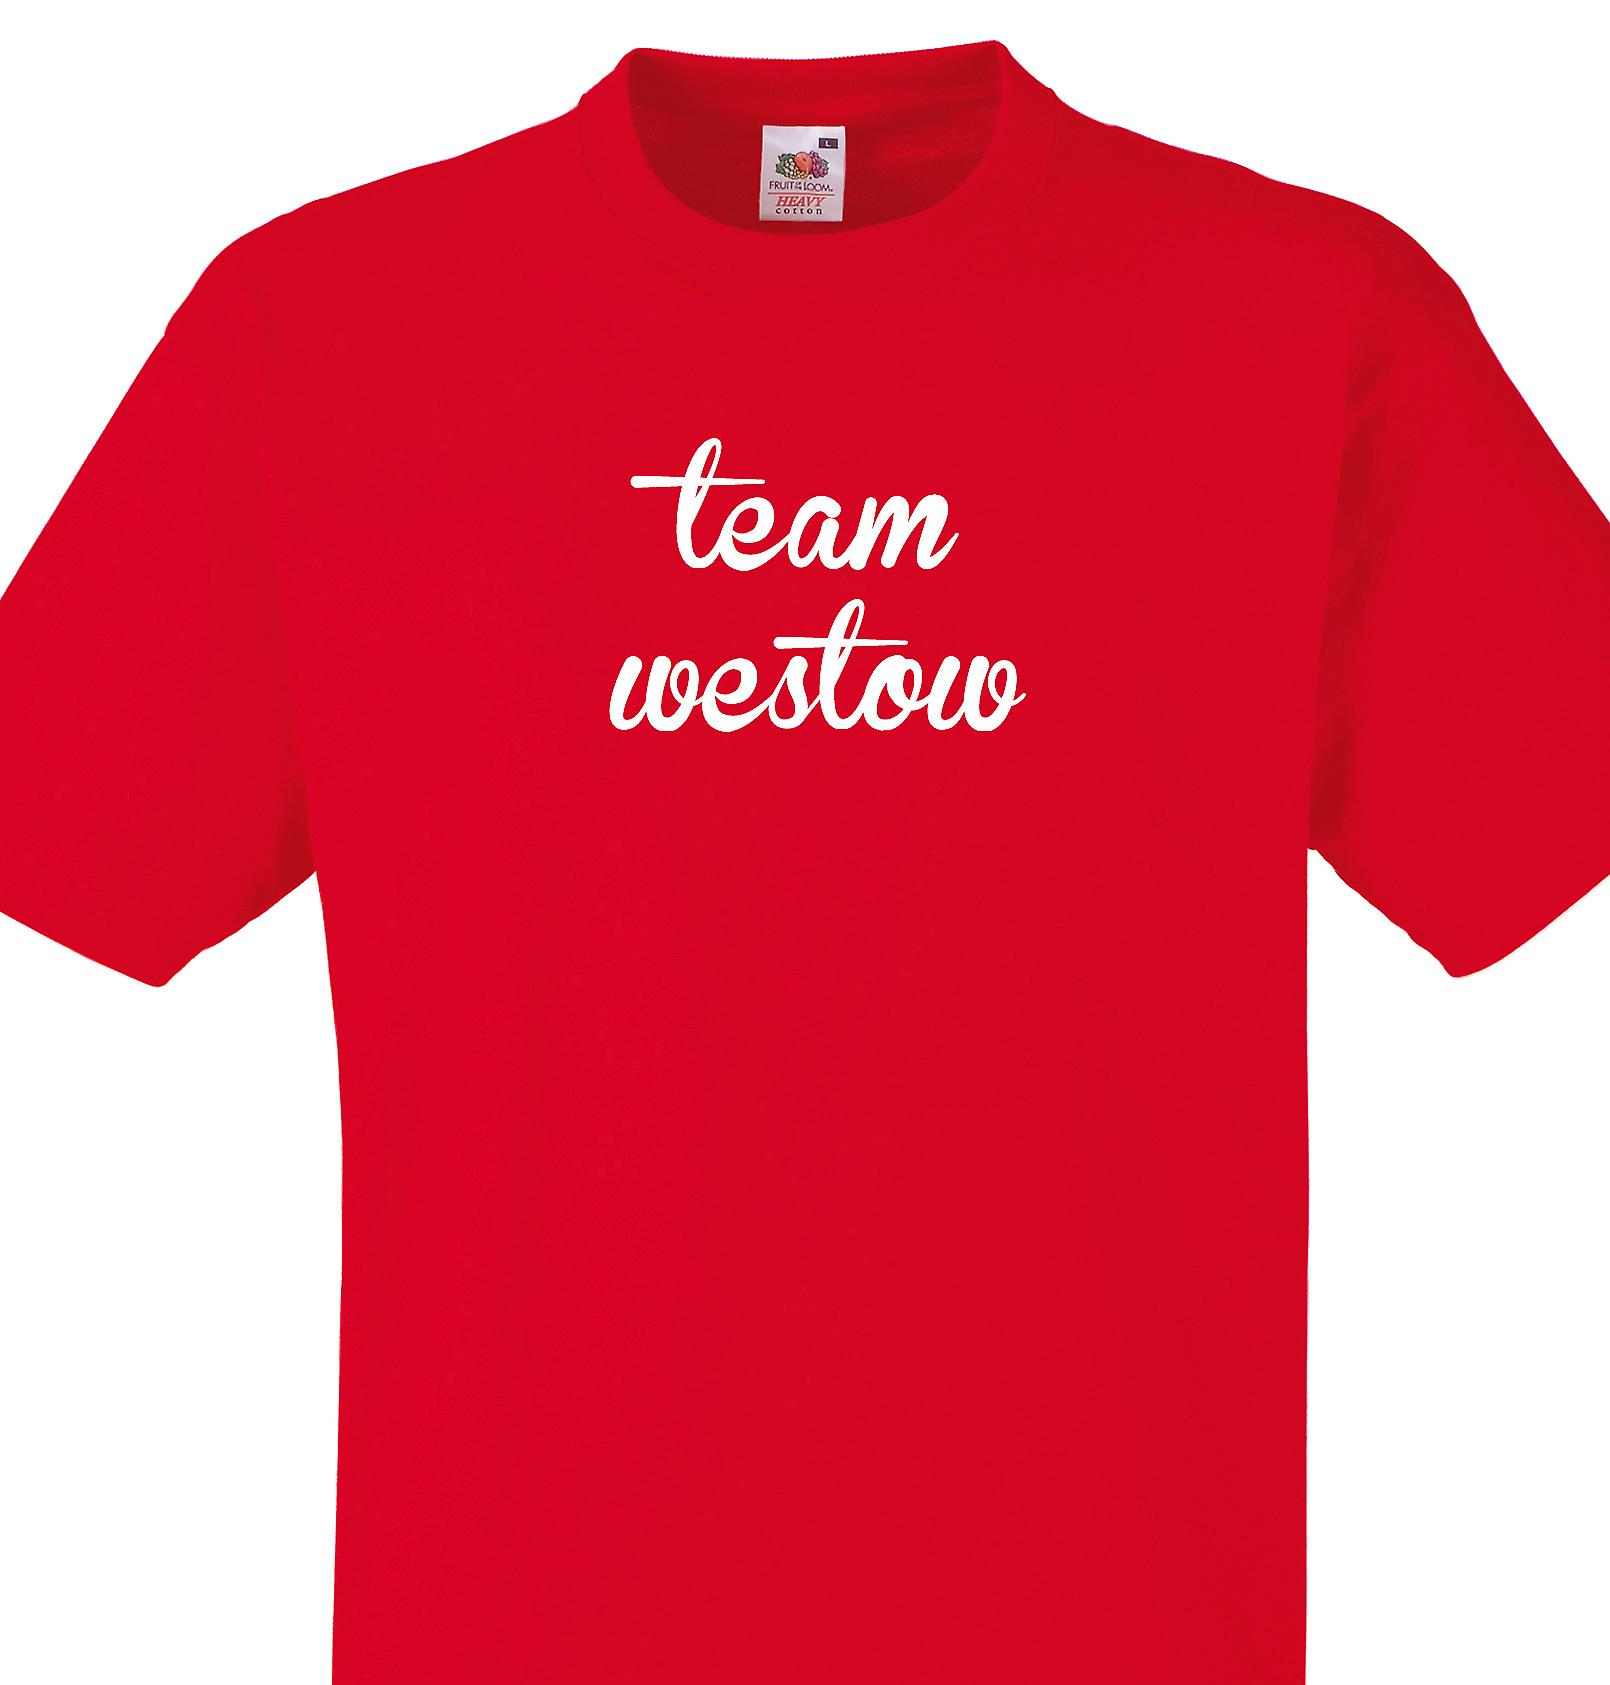 Team Westow Red T shirt